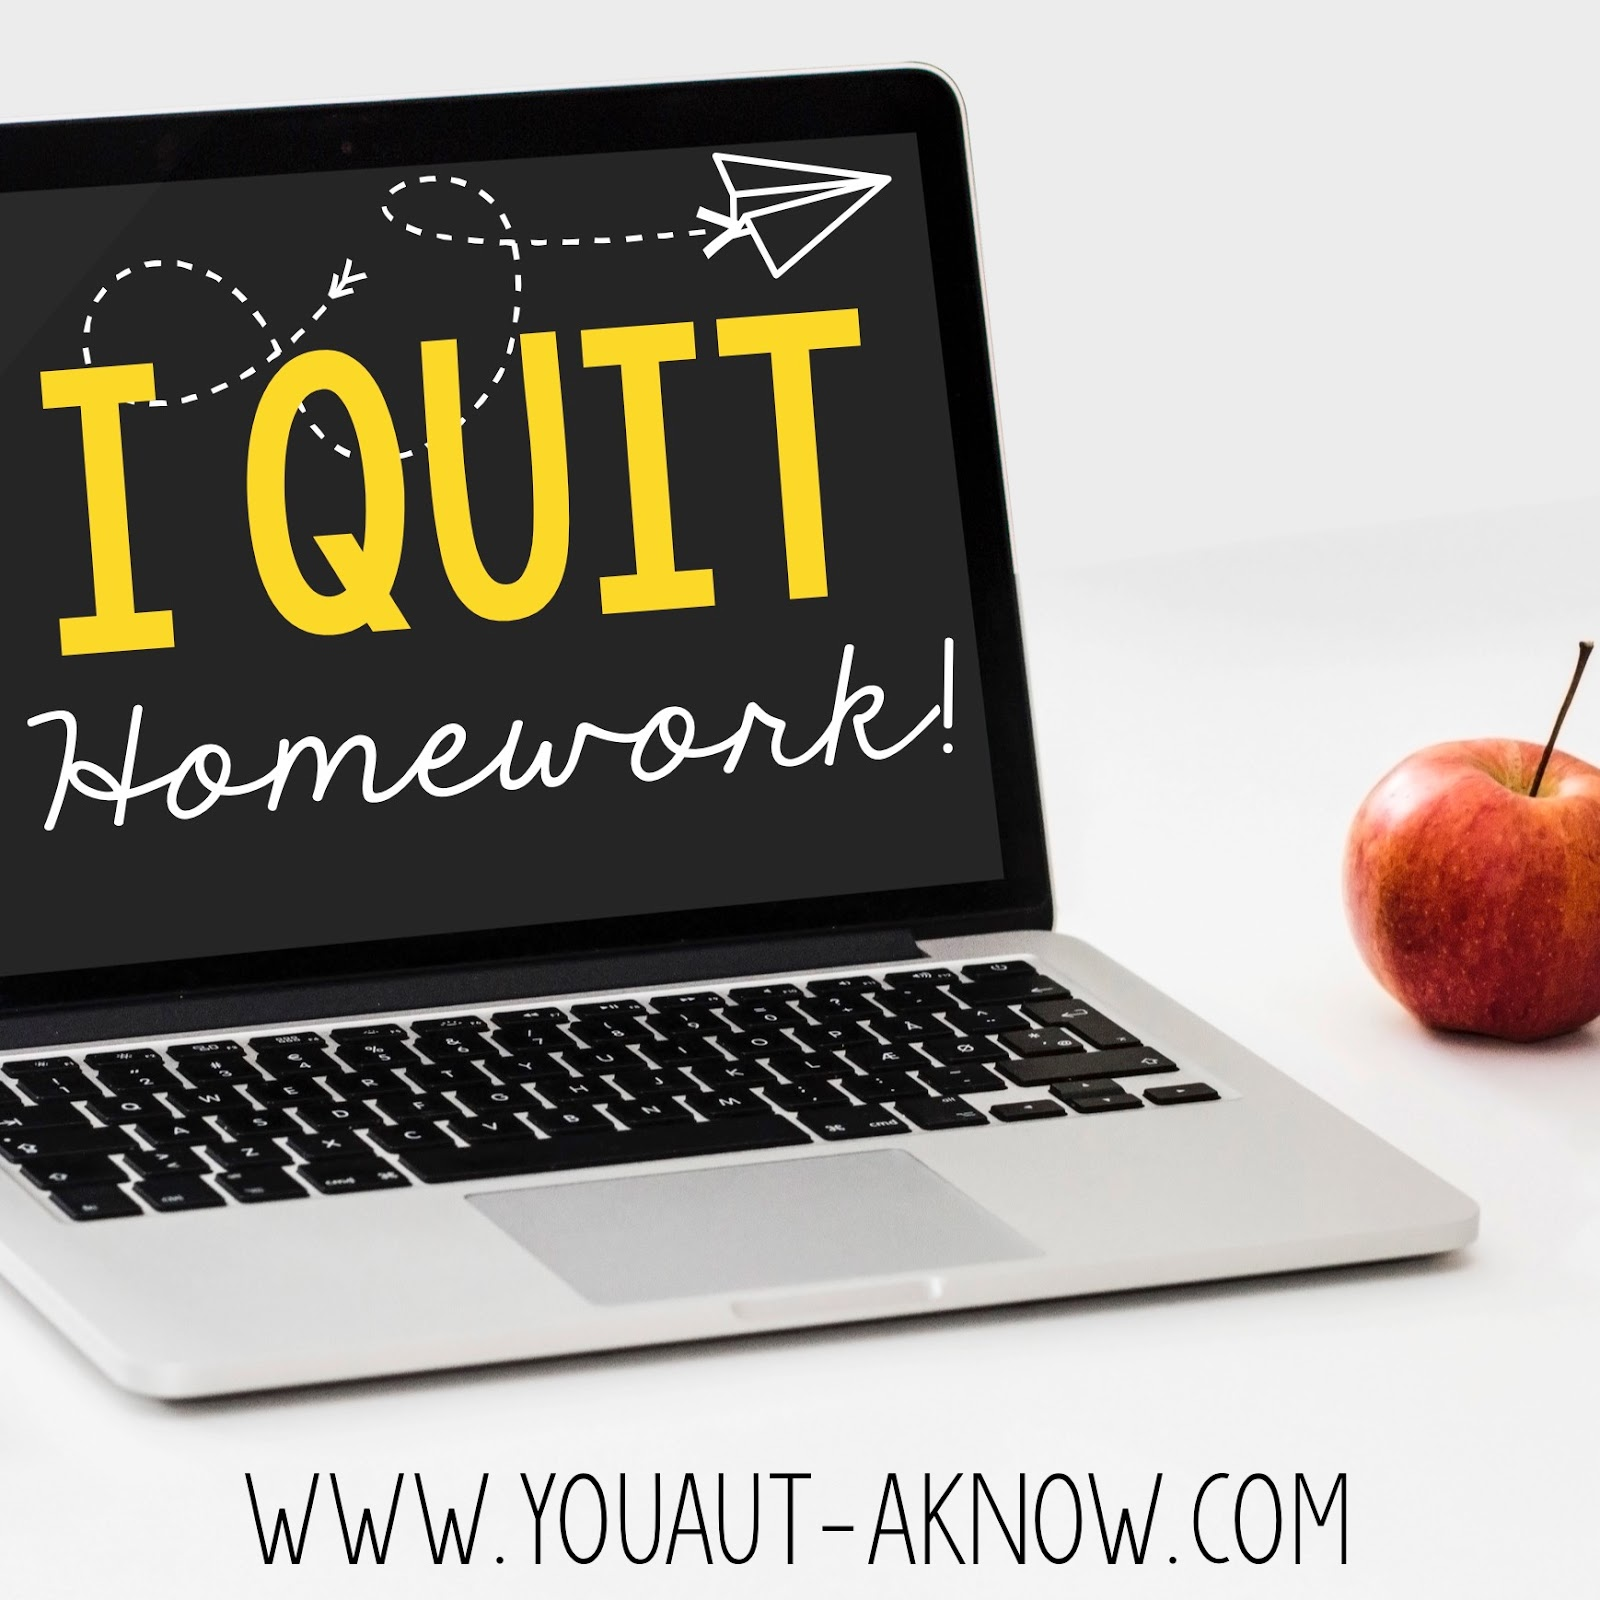 You heard it right, I'm quitting homework. Teacher's don't like homework either and I'm making one simple change in my classroom so I can quit homework while students continue to learn at home.